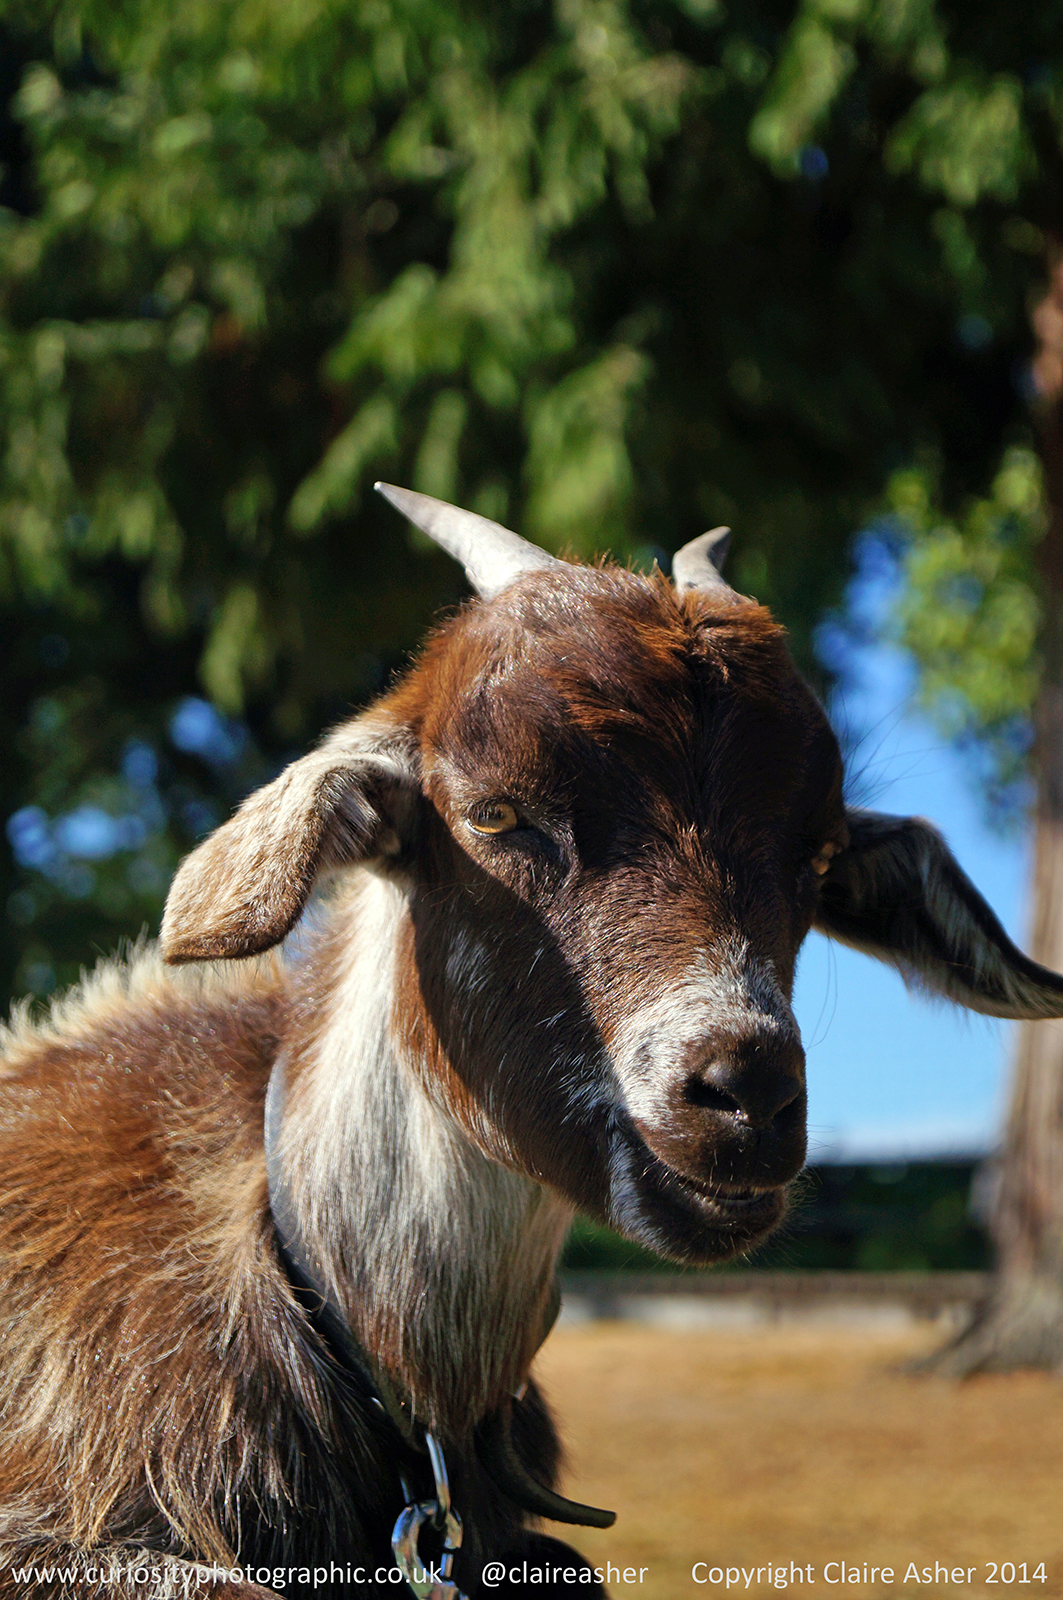 A goat (Capra aegagrus hircus) photographed in New Zealand in 2014